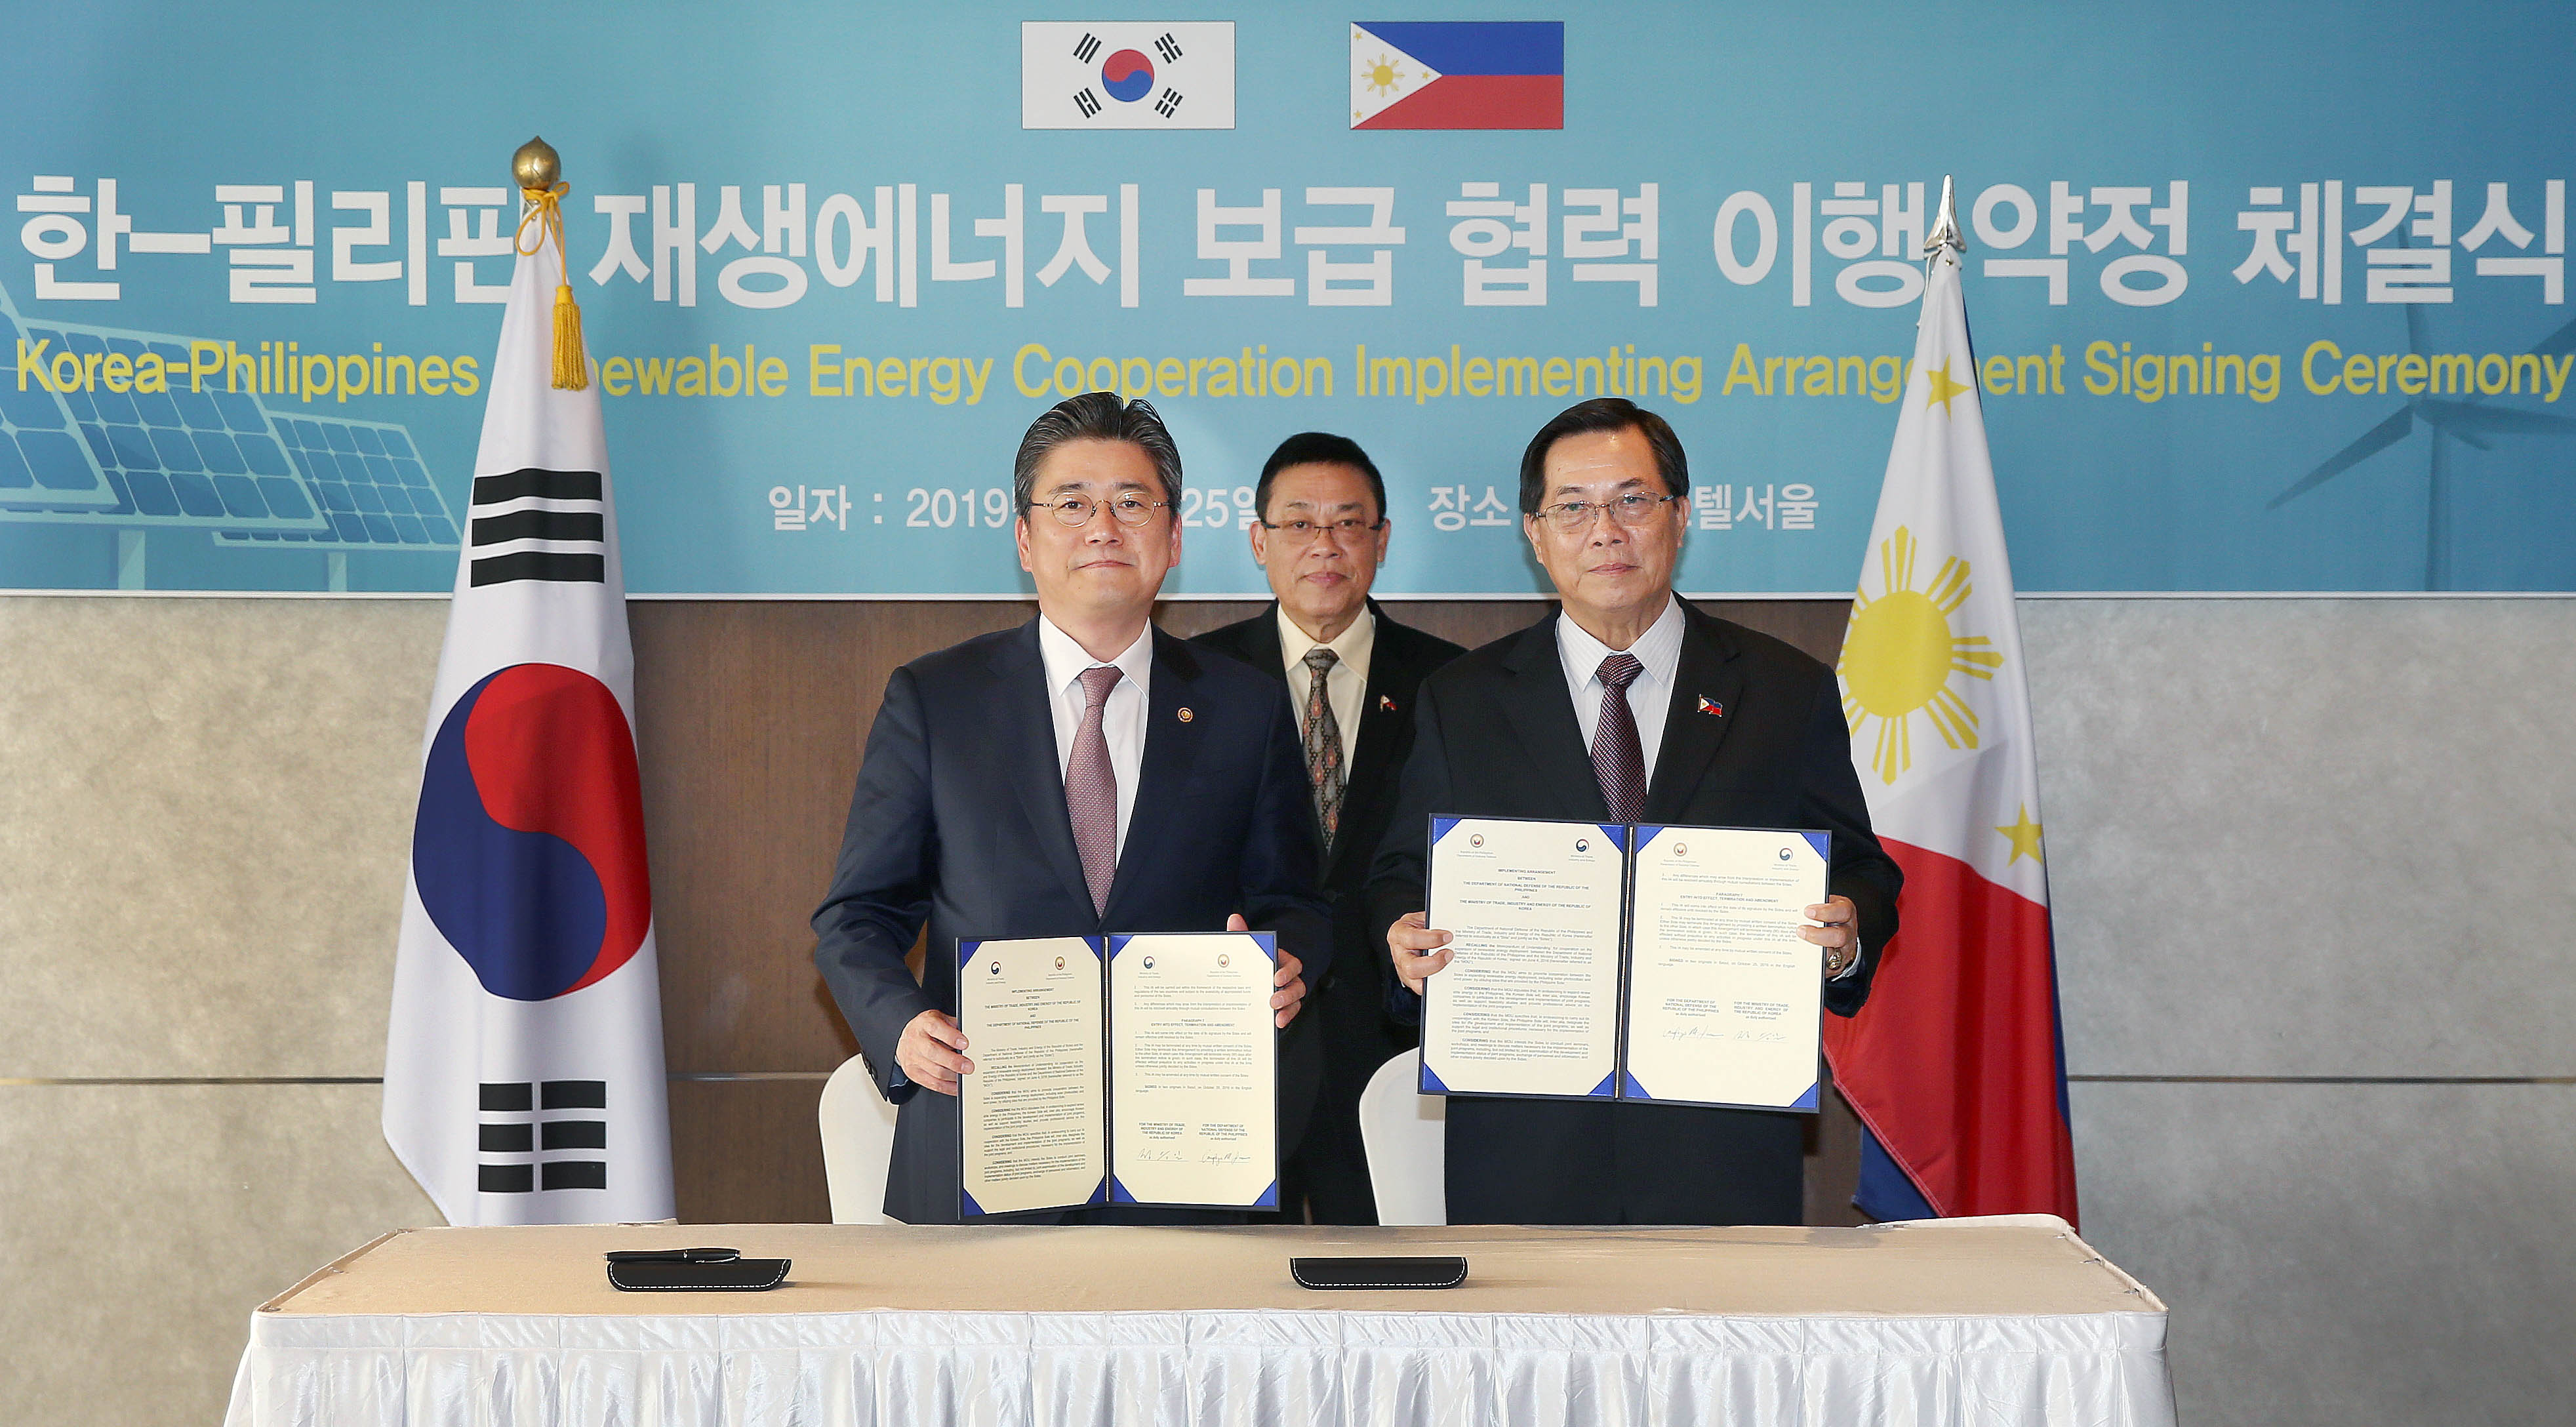 Korea signs implementing agreement for renewable energy cooperation with the Philippines